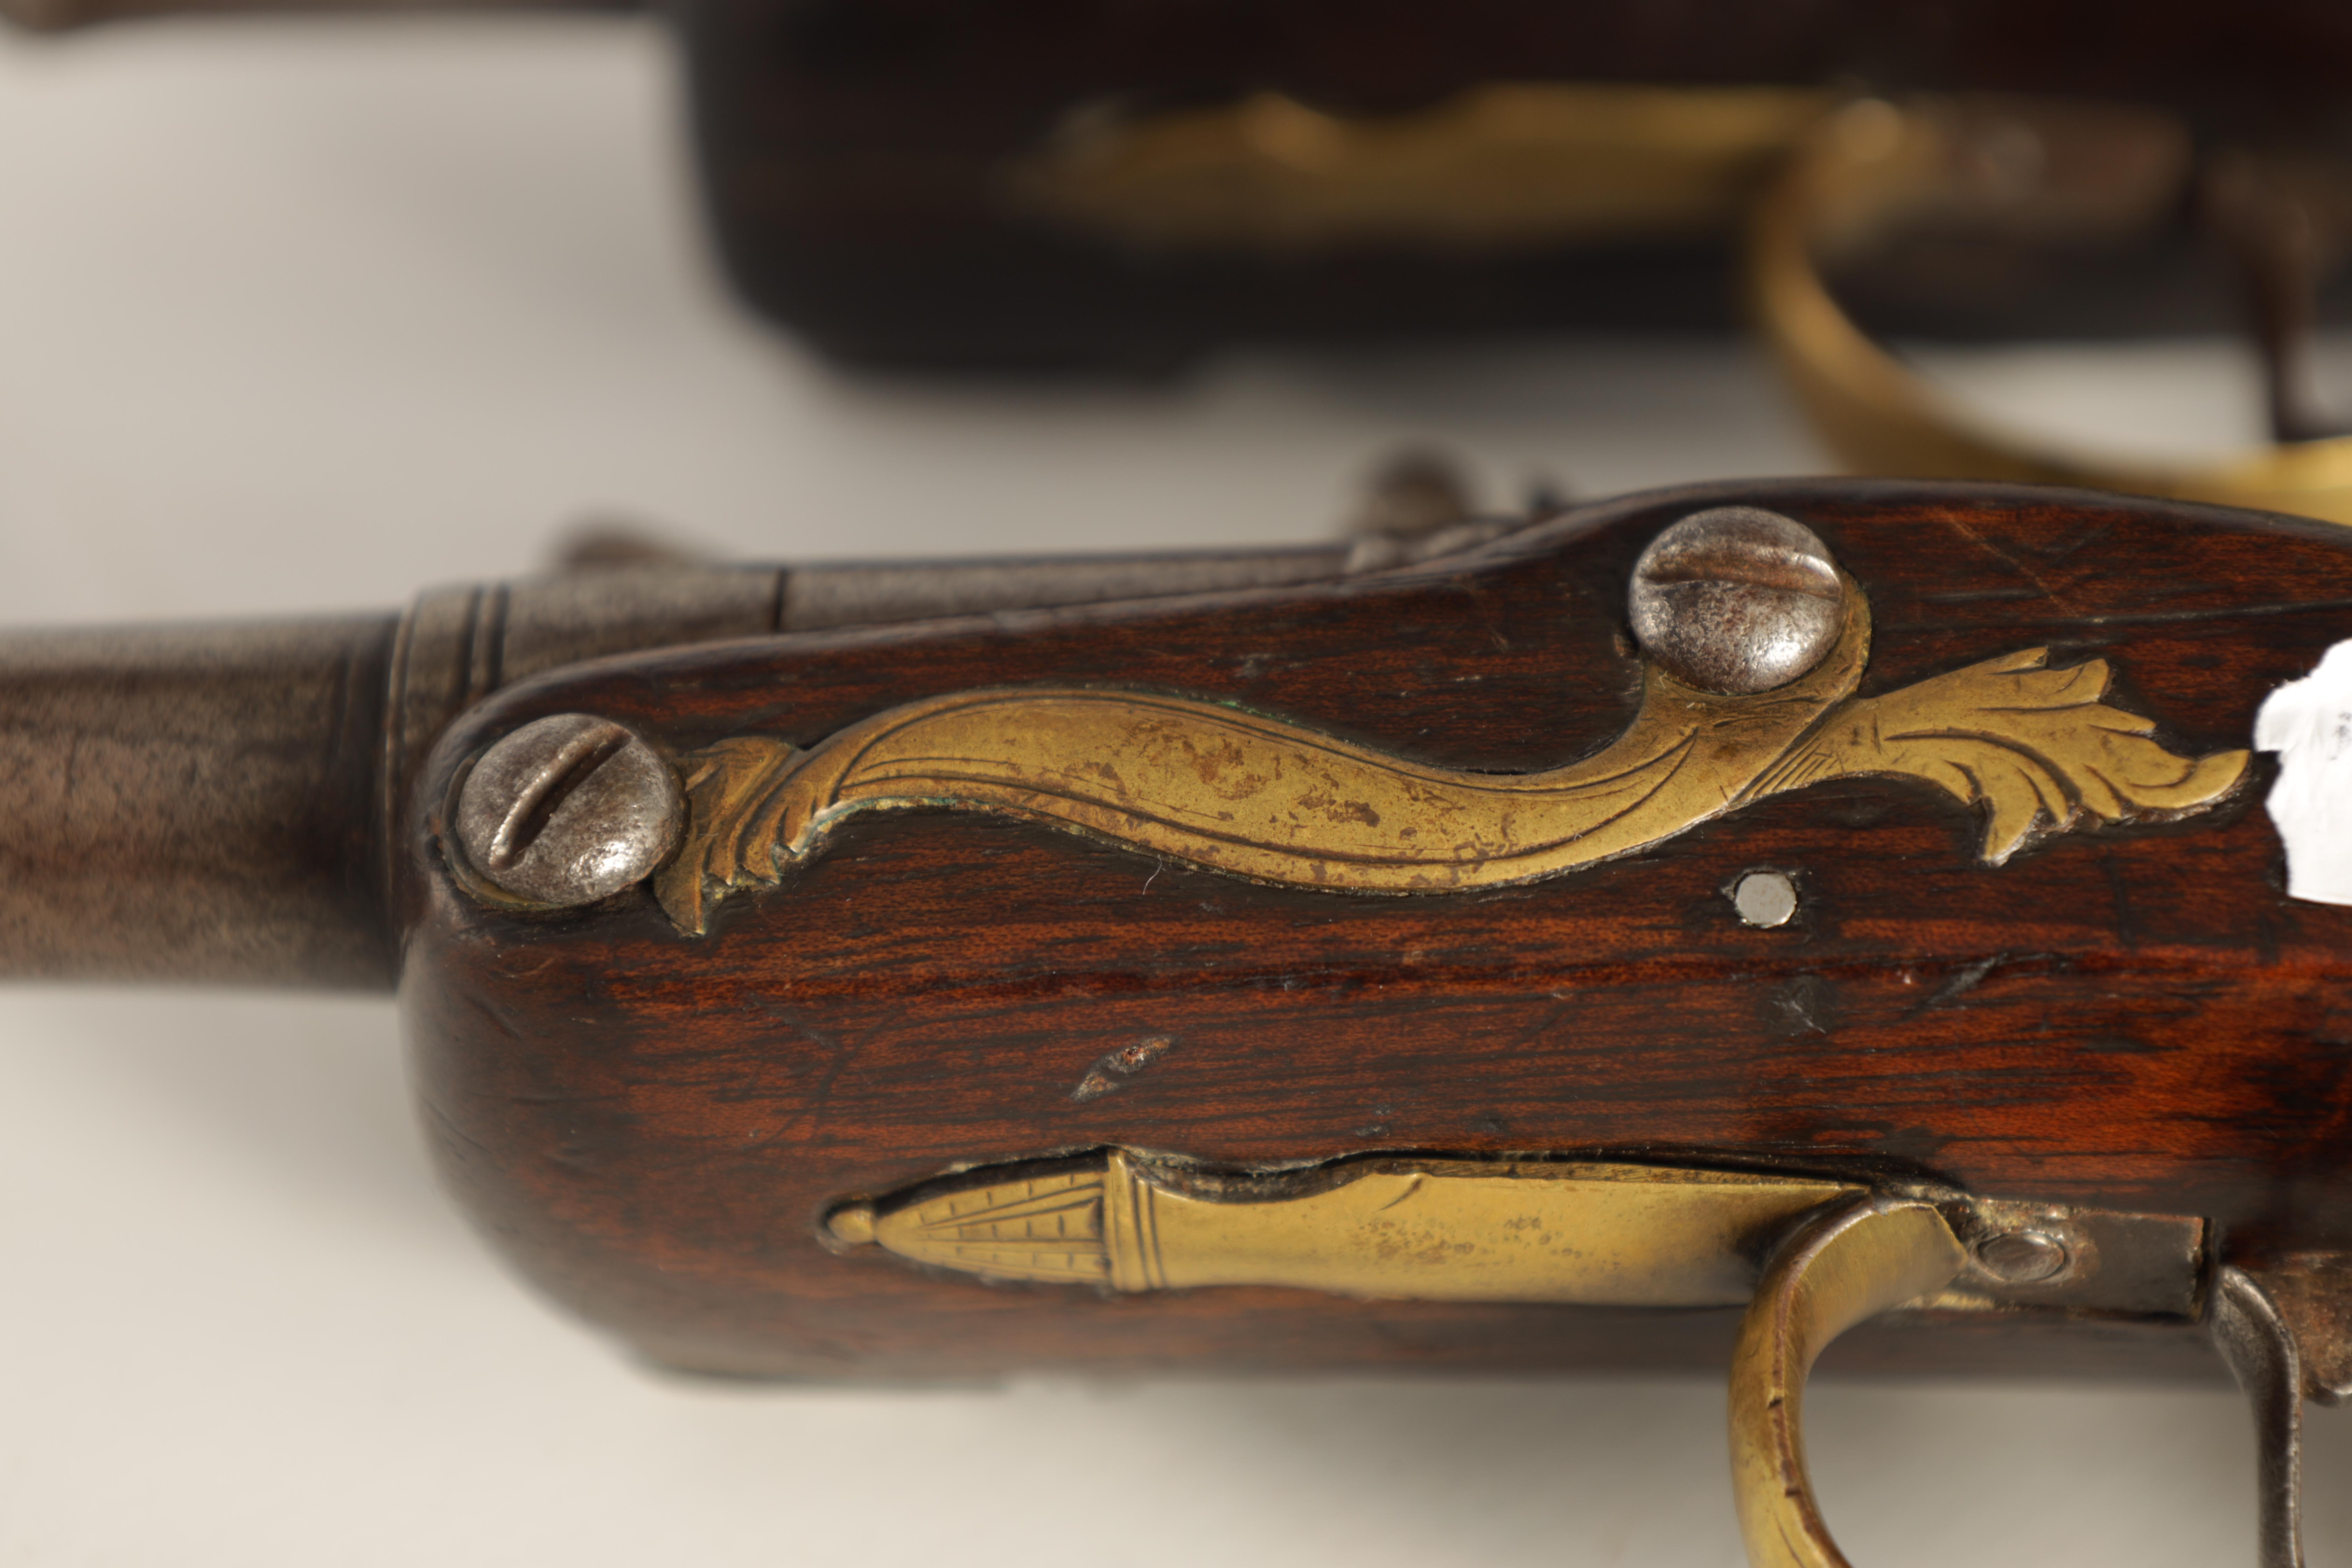 T. JONES. A PAIR OF EARLY 18TH CENTURY FLINTLOCK POCKET PISTOLS with turn-off cannon barrel, - Image 10 of 14